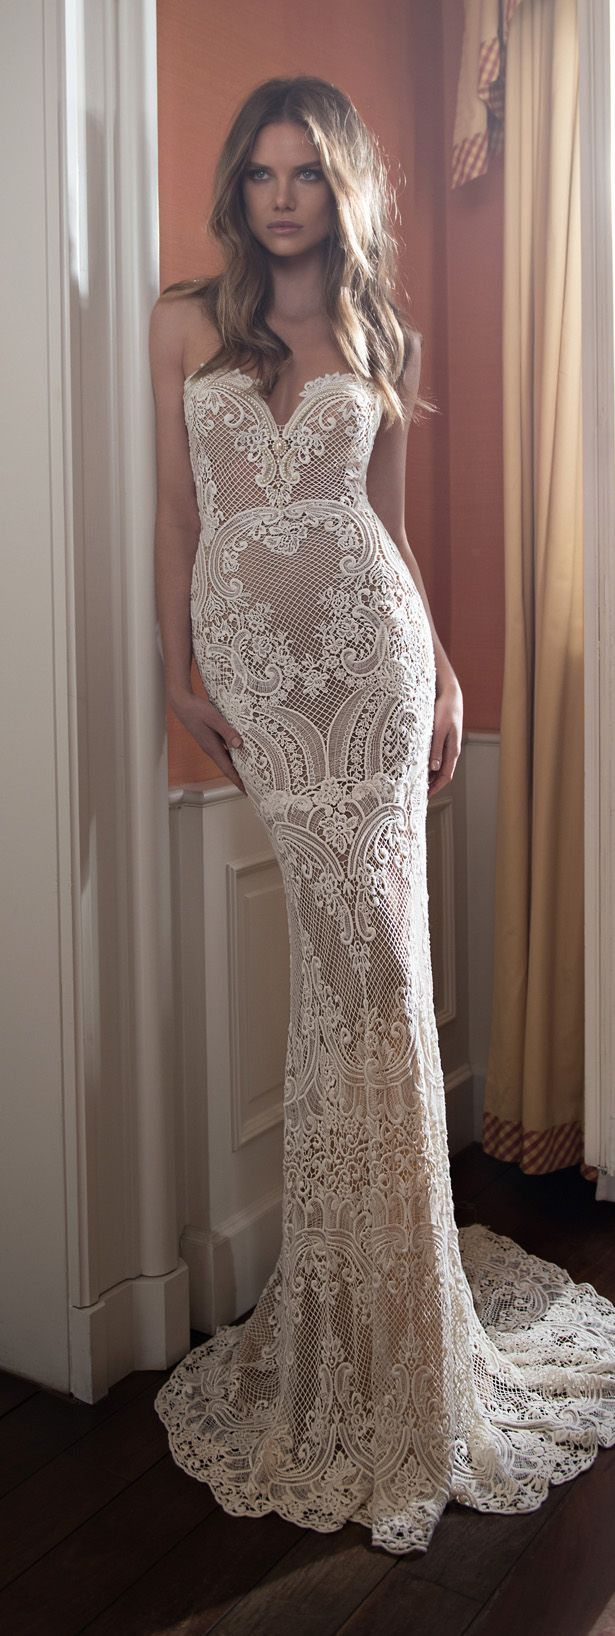 Best wedding dresses of 2015 berta bridal fall 2015 and wedding best weddingdresses of 2015 berta bridal fall 2015 ombrellifo Choice Image